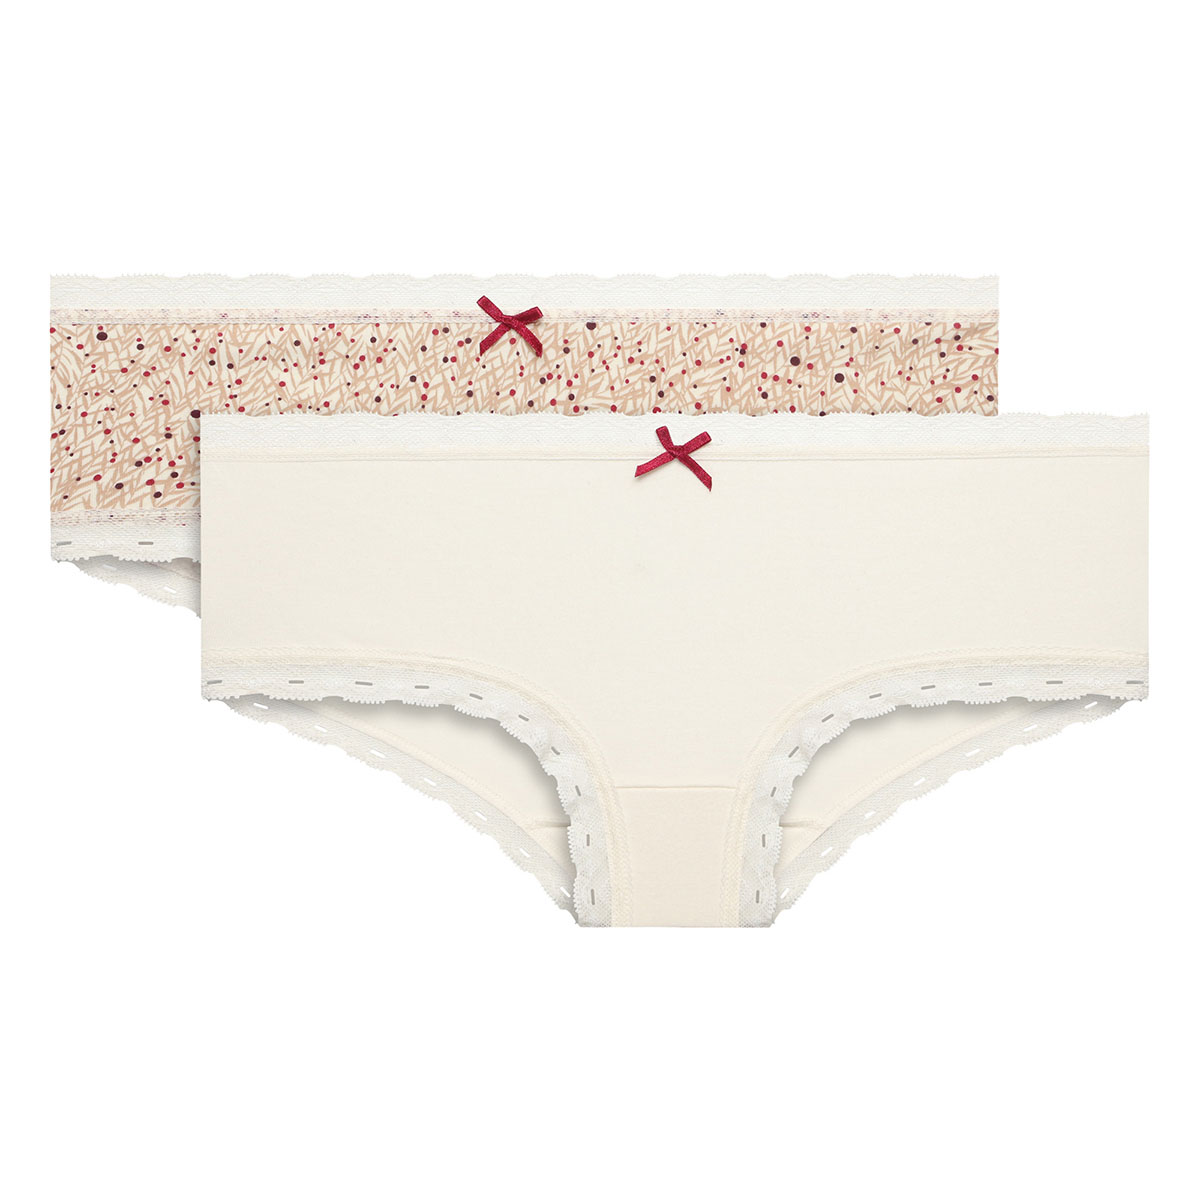 Lot de 2 boxers femme coton beige uni et imprimé cerises Cotton Fancy, , PLAYTEX